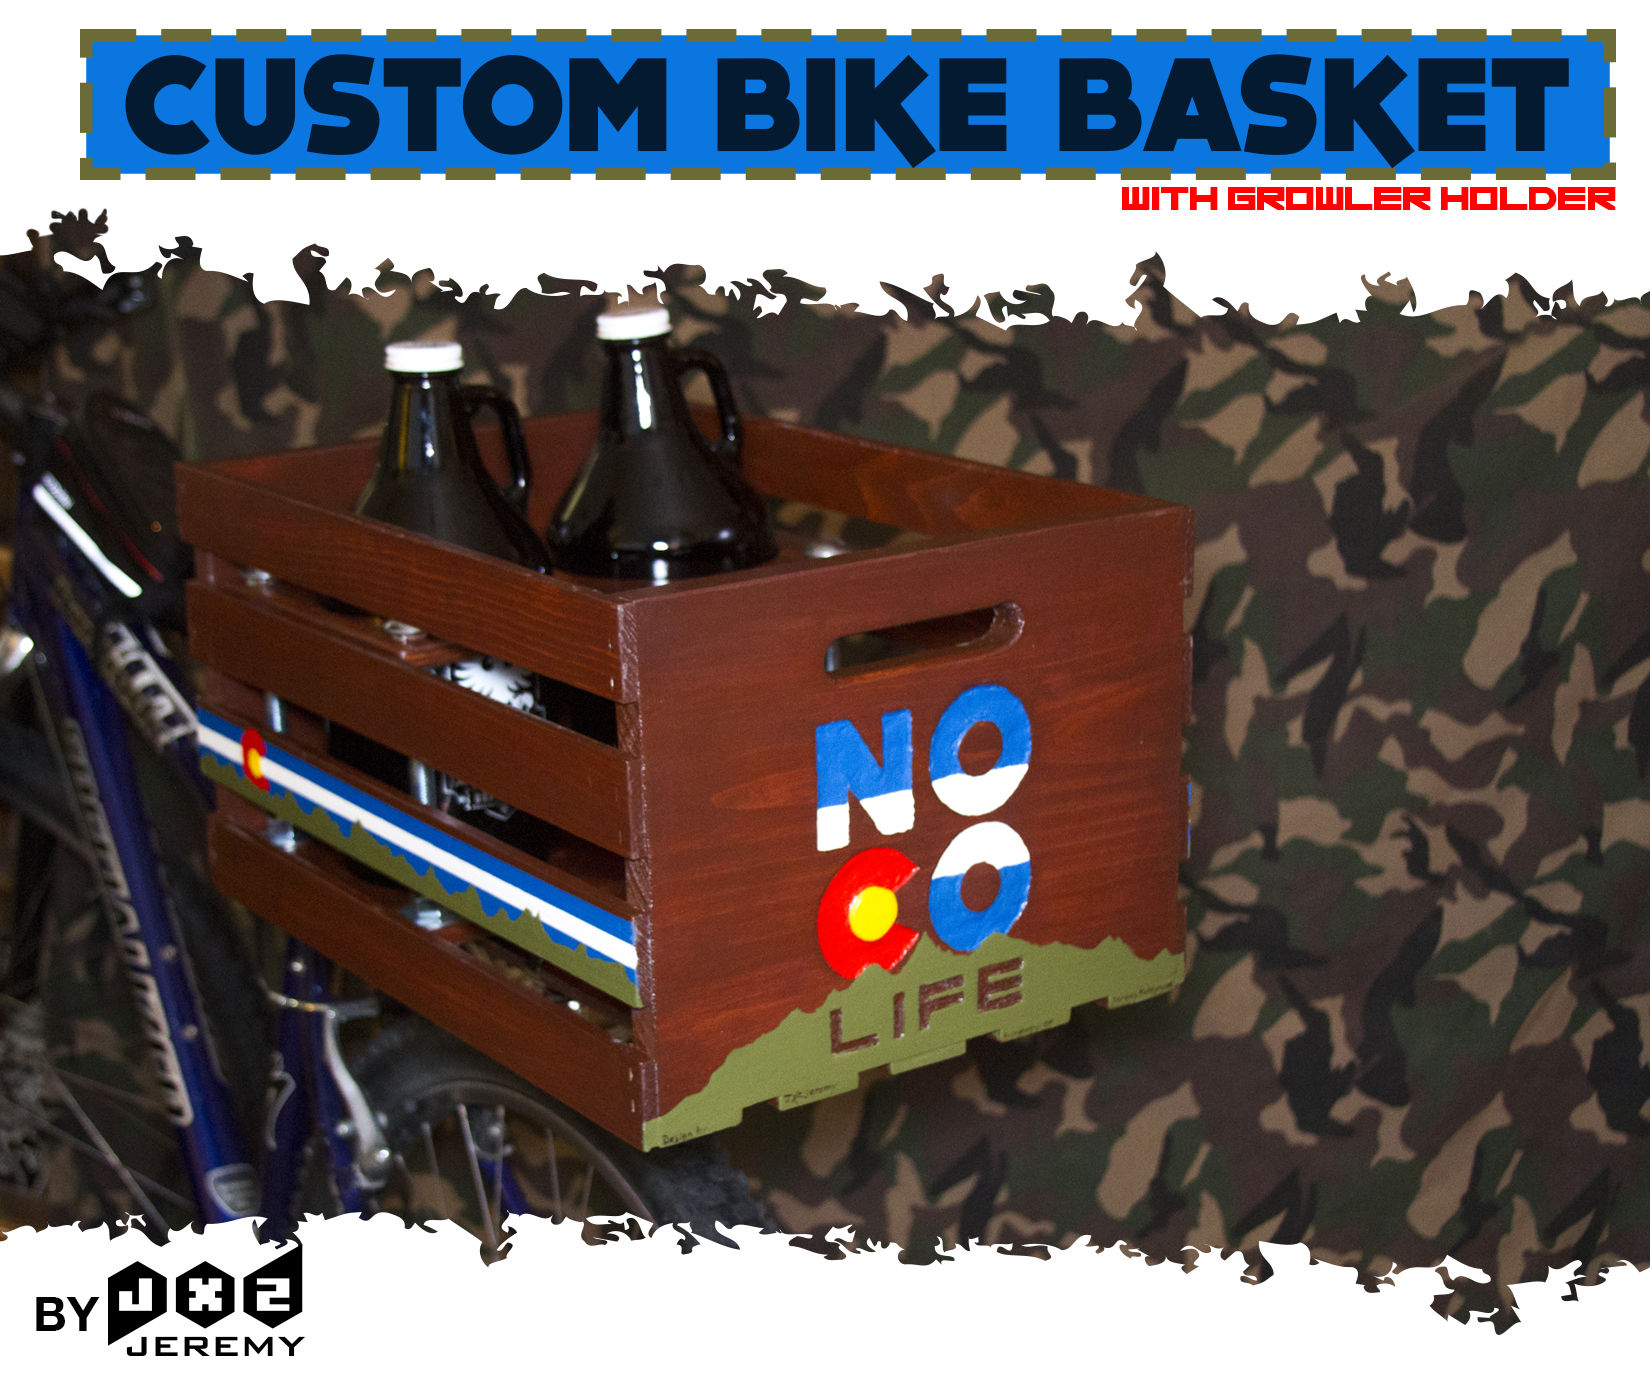 Customized Bike Basket With Removable Growler Holder